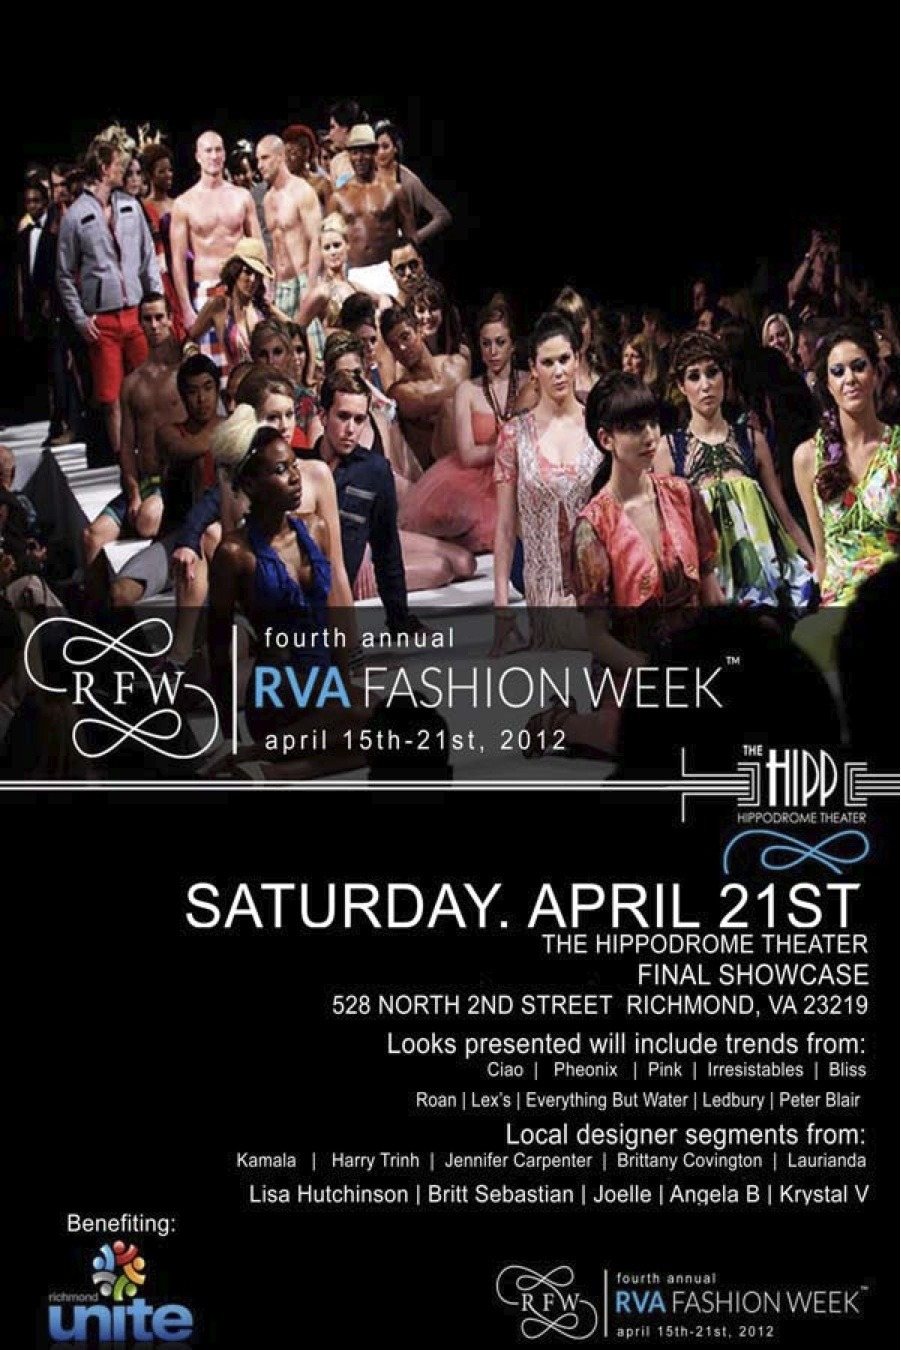 Another HUGE event part of RVA Fashion Week!